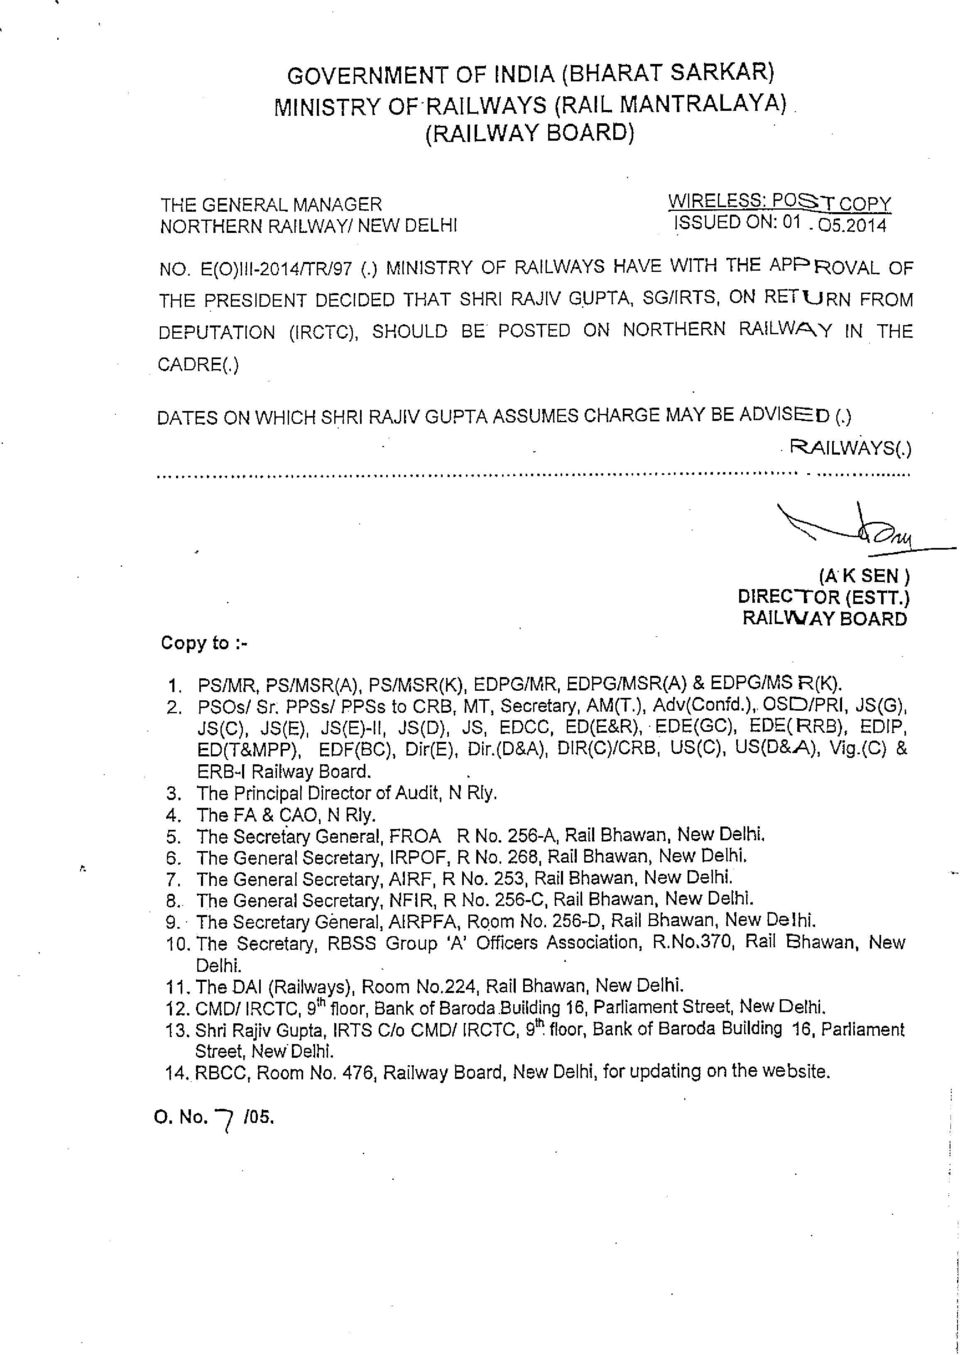 ) DATES ON WHICH SHRI RAJIV GUPTA ASSUMES CHARGE MAY BE ADVISED (.) RAILWAYS() Copy to :- 1. PS/MR, PS/MSR(A), PS/MSR(K), EDPG/MR, EDPG/MSR(A) & EDPG/MS R(K). 2. PSOs/ Sr.